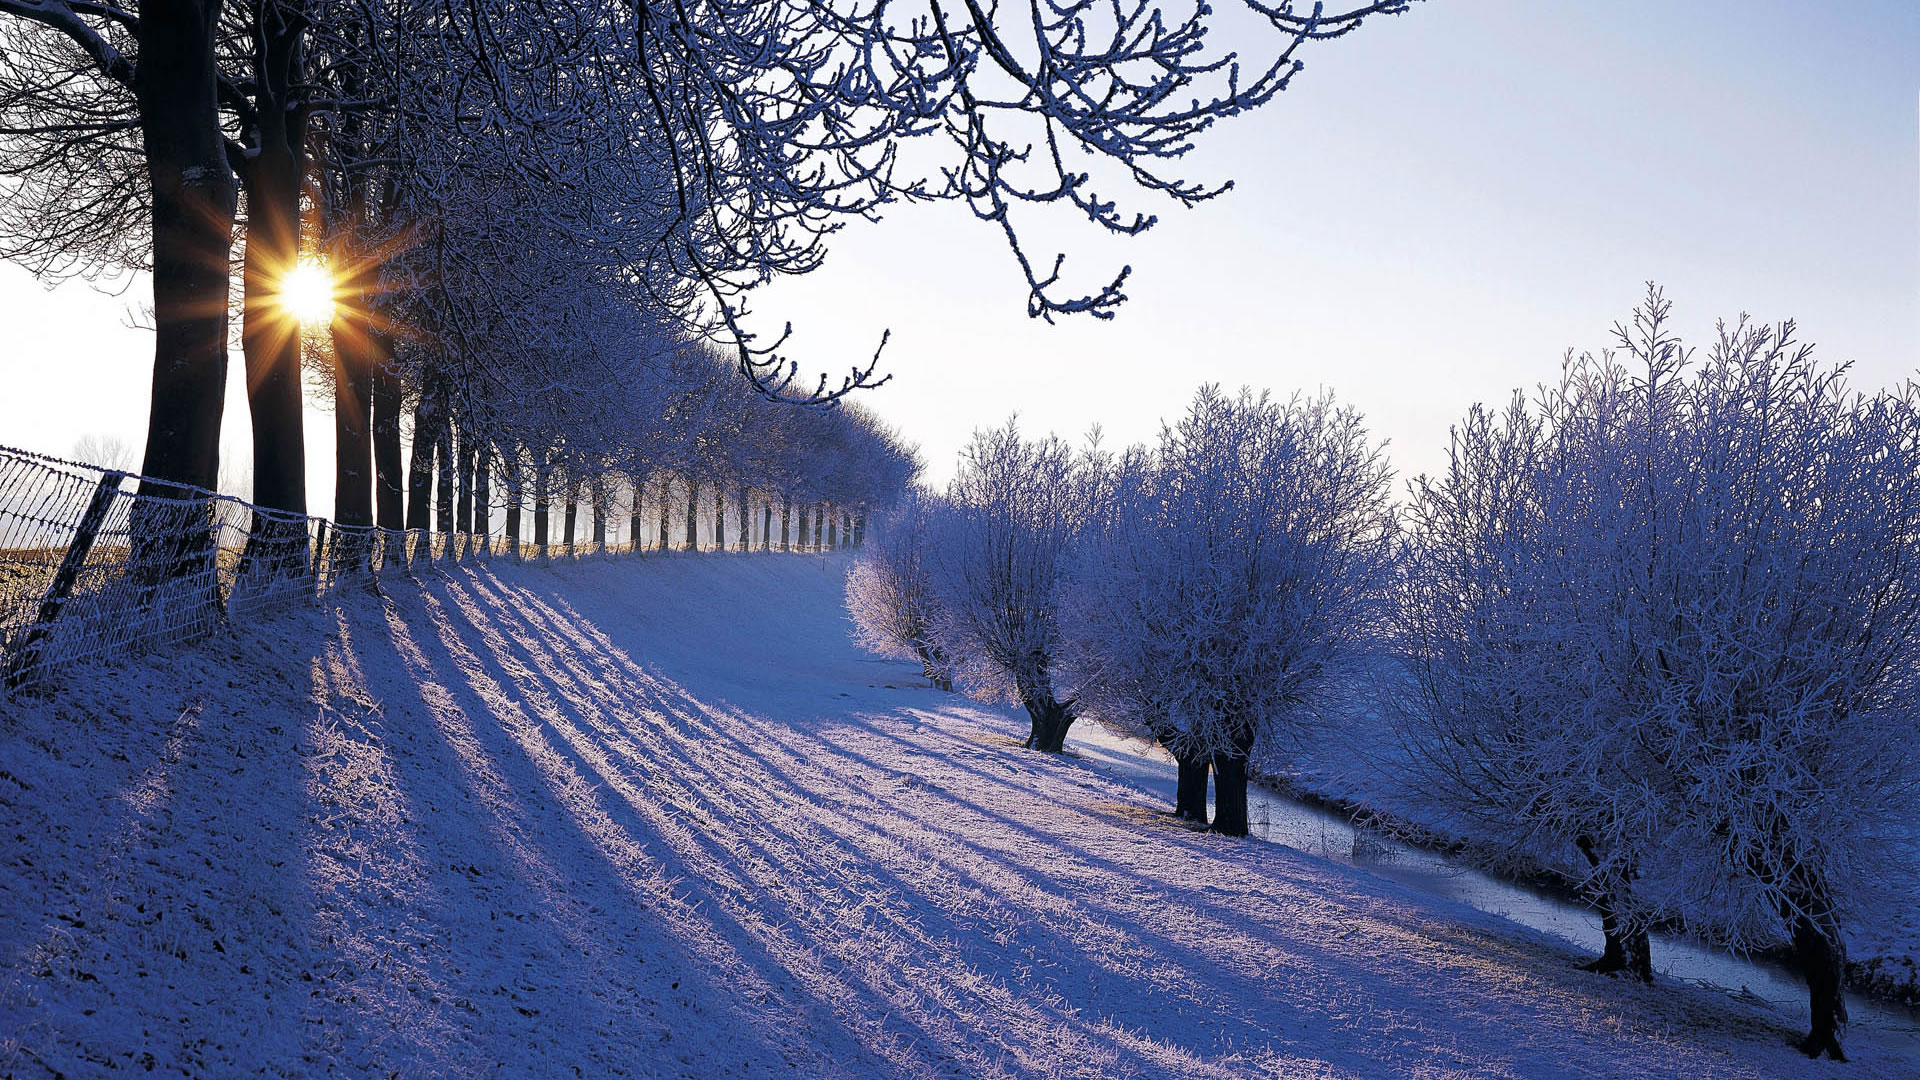 is under the winter wallpapers category of hd wallpapers 1920x1080